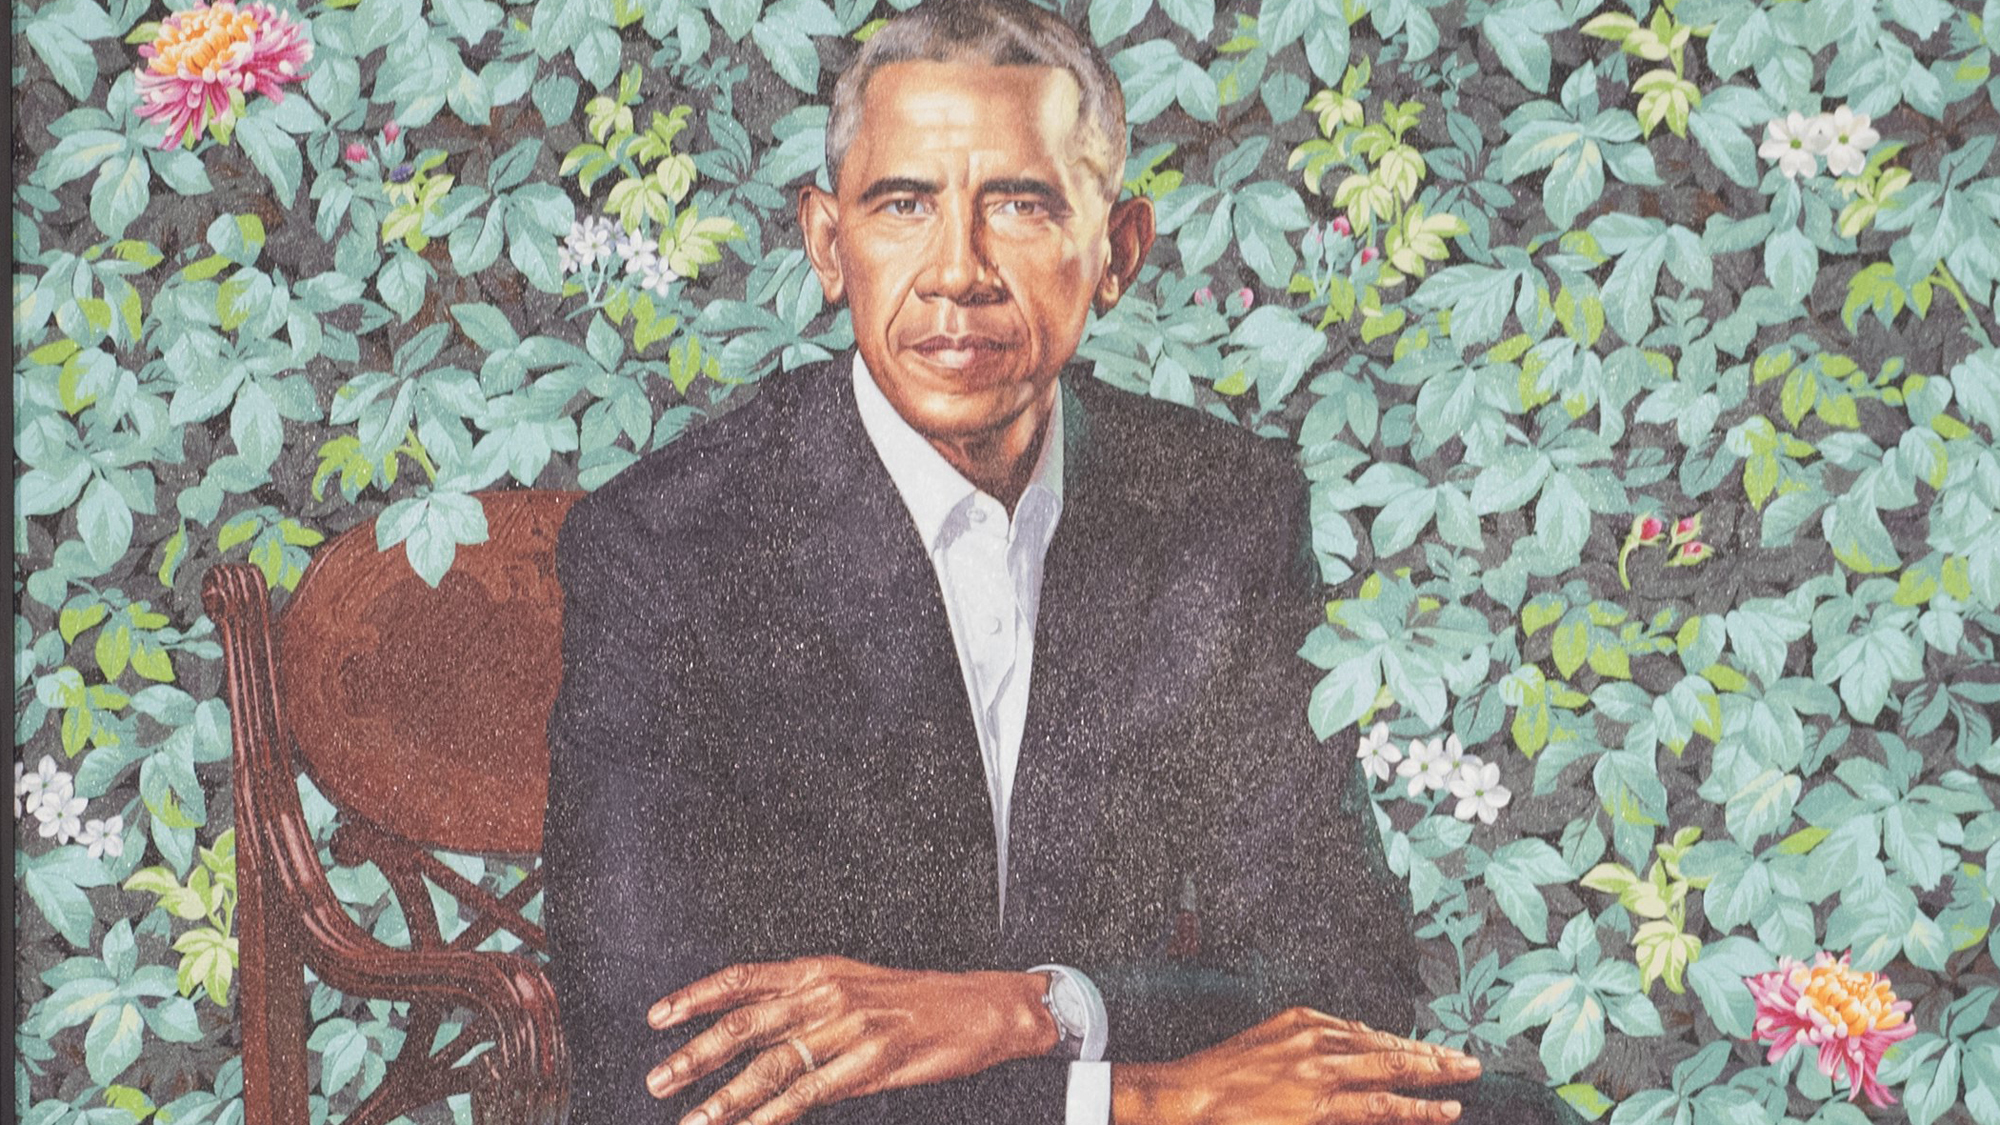 Portraits of former US President Barack Obama and former First Lady Michelle Obama at the Smithsonian's National Portrait Gallery